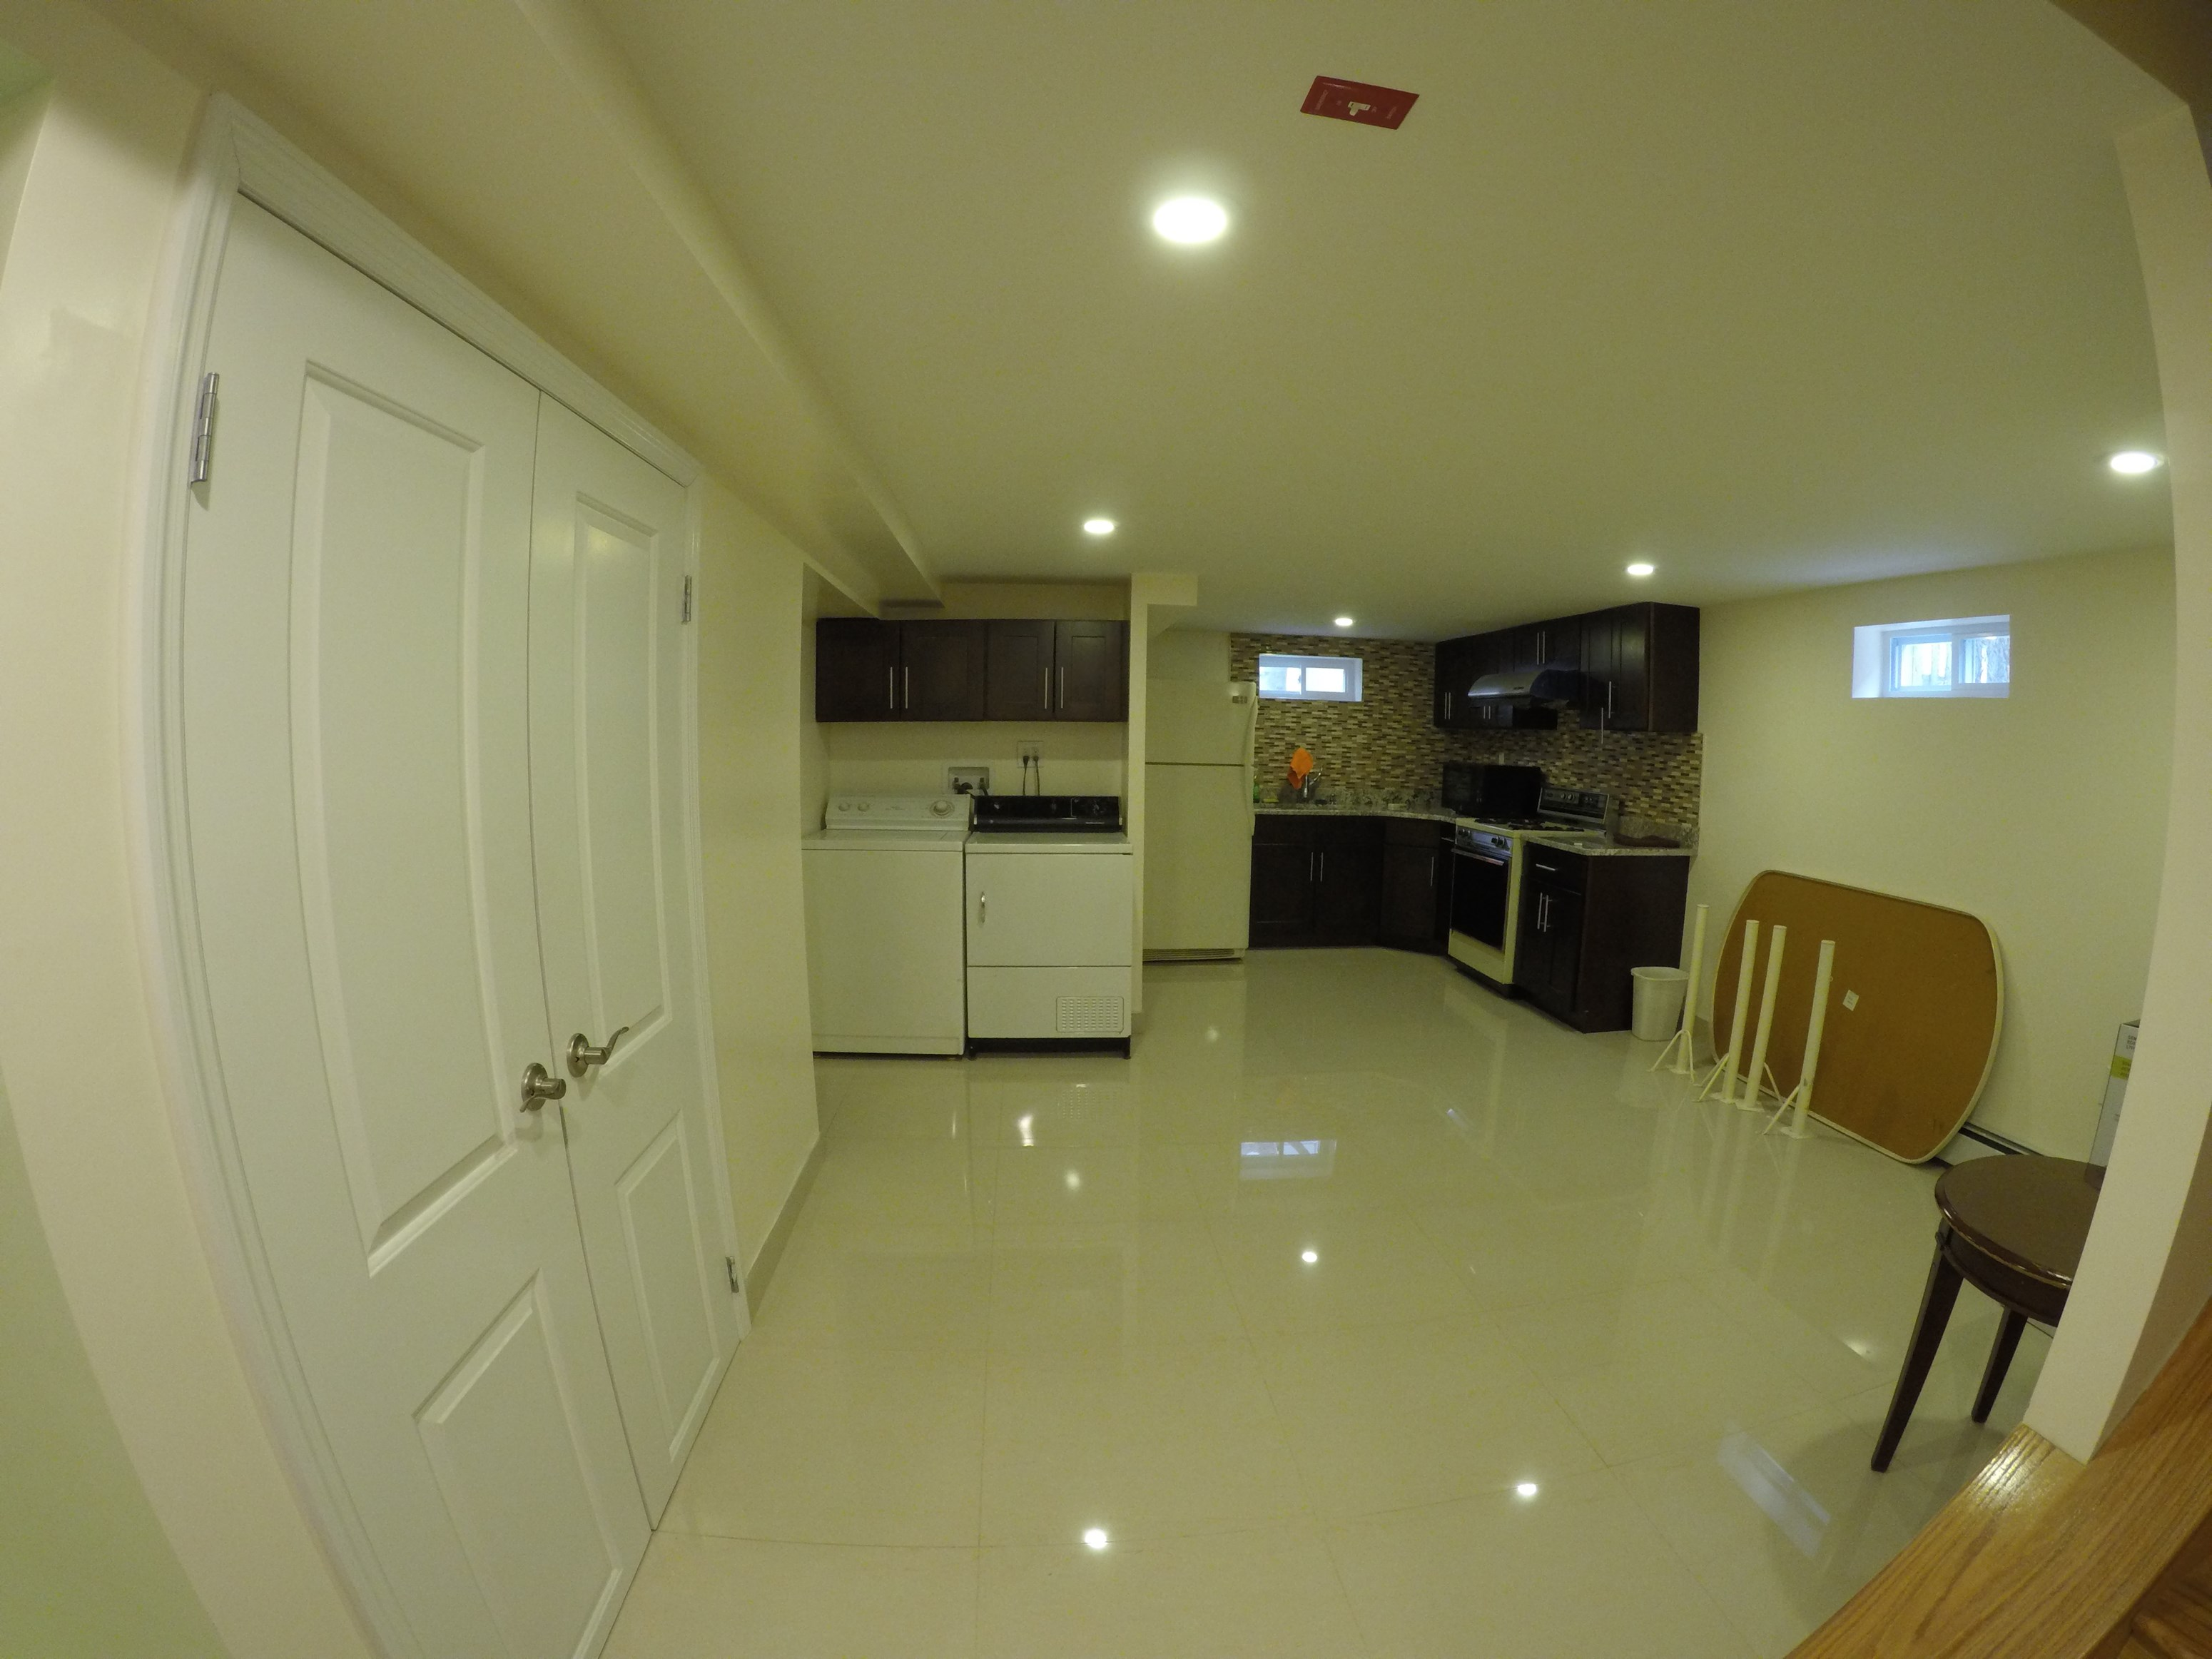 Spacious new renovated 1 bed 1 bath opp jsq path 1 bhk basement apartment in jersey city nj - Basement apartment ...